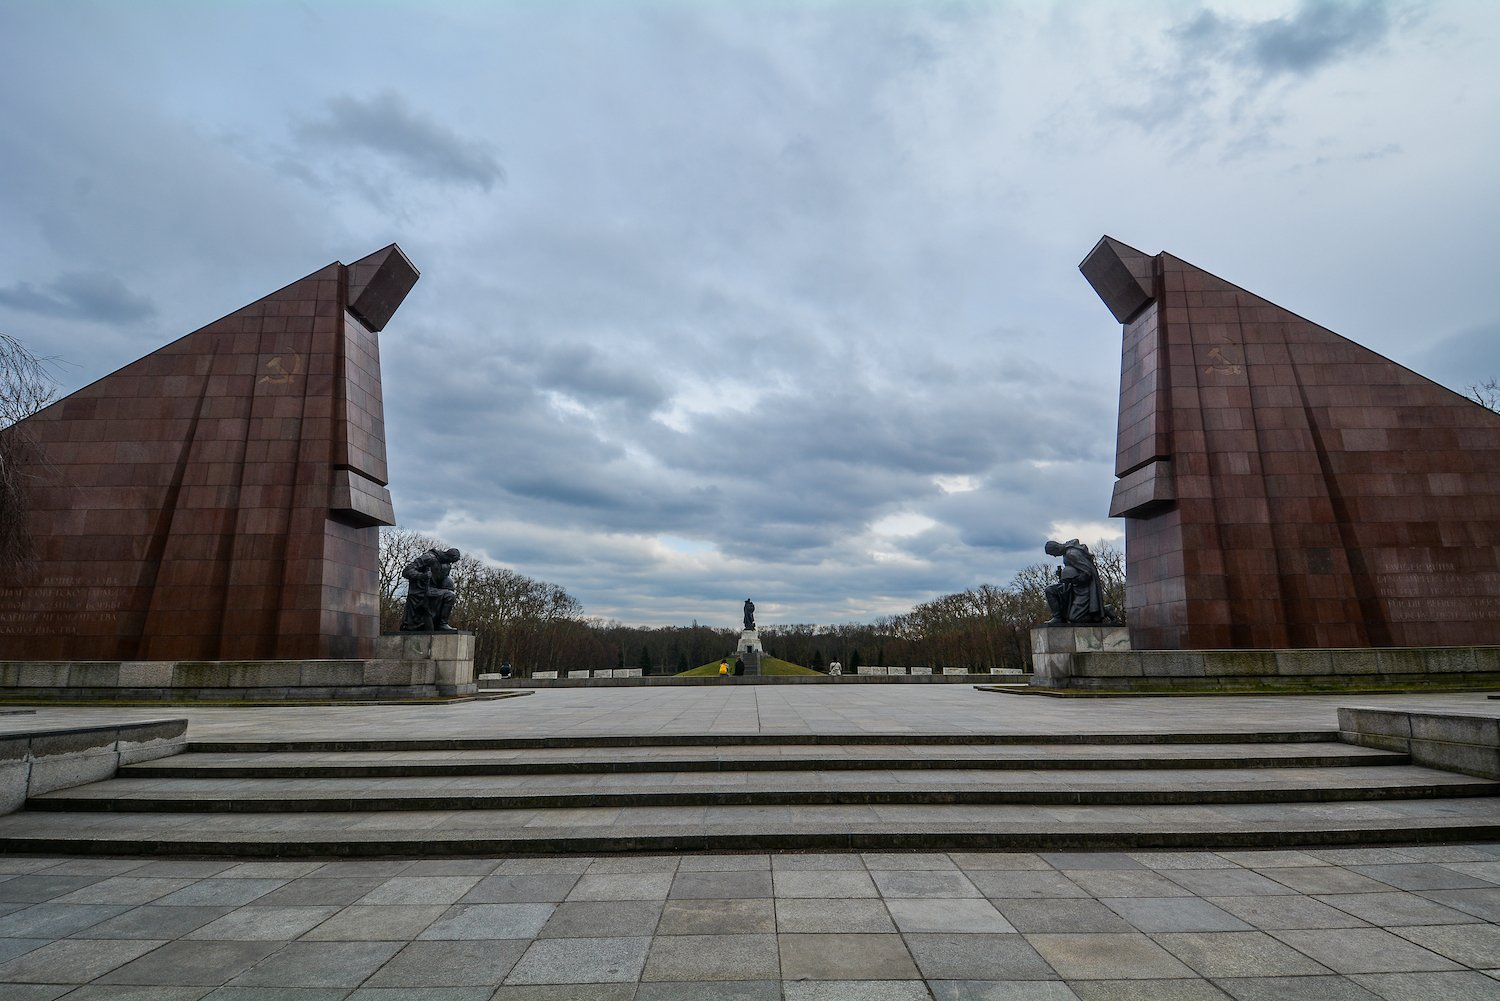 granite flags sowjetisches ehrenmal treptower park treptow soviet war memorial berlin germany